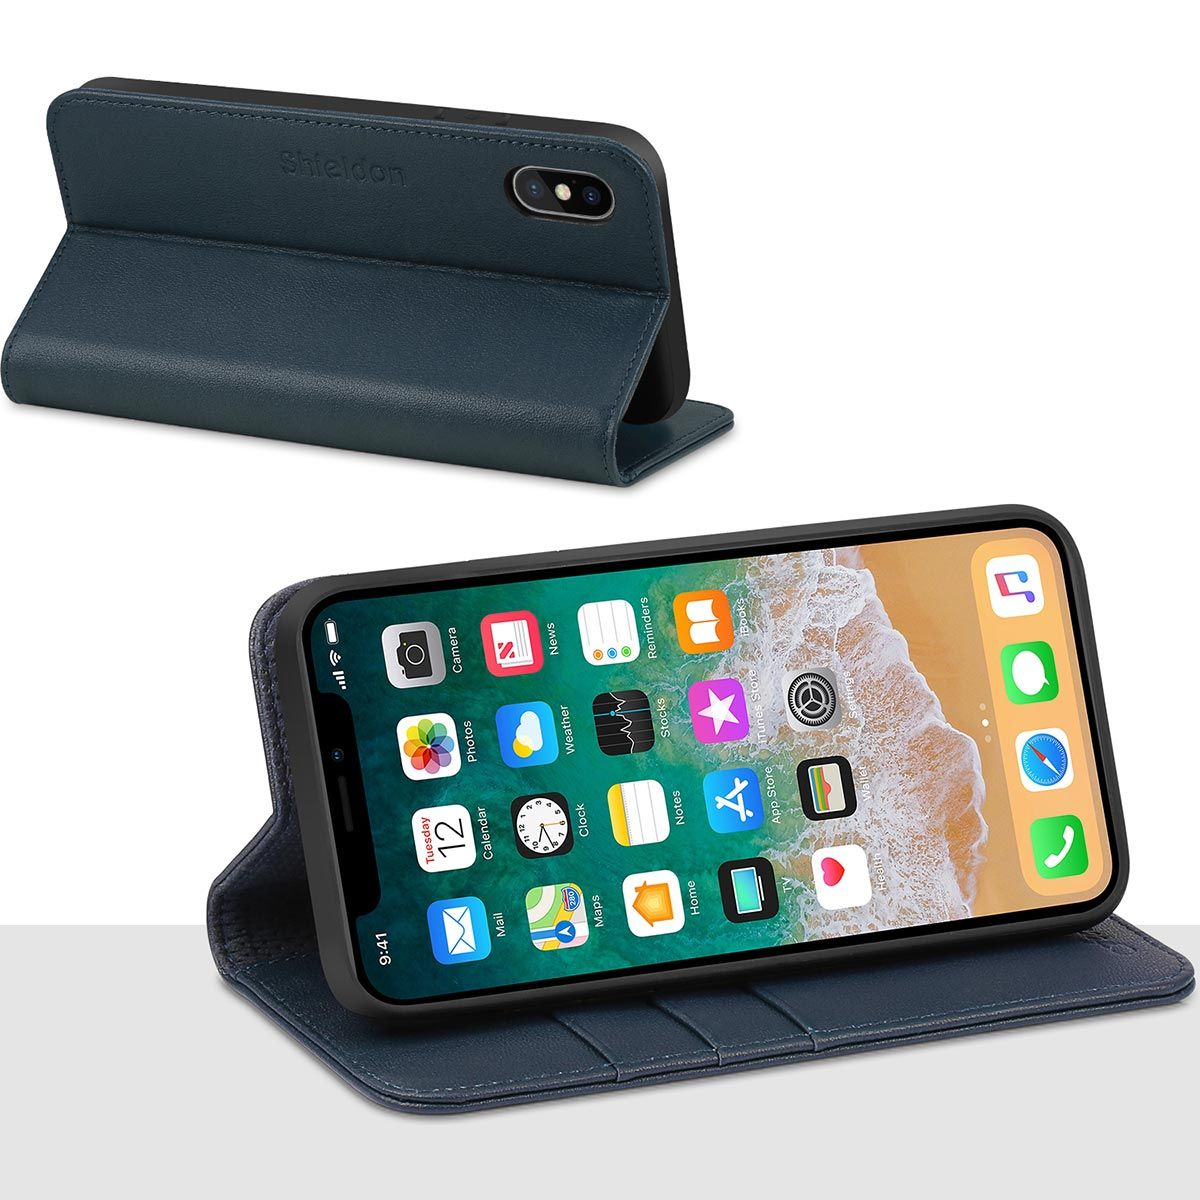 269b7f0aed4 SHIELDON iPhone X/10 Flip Wallet Case with Magnetic Closure, Kickstand  Function